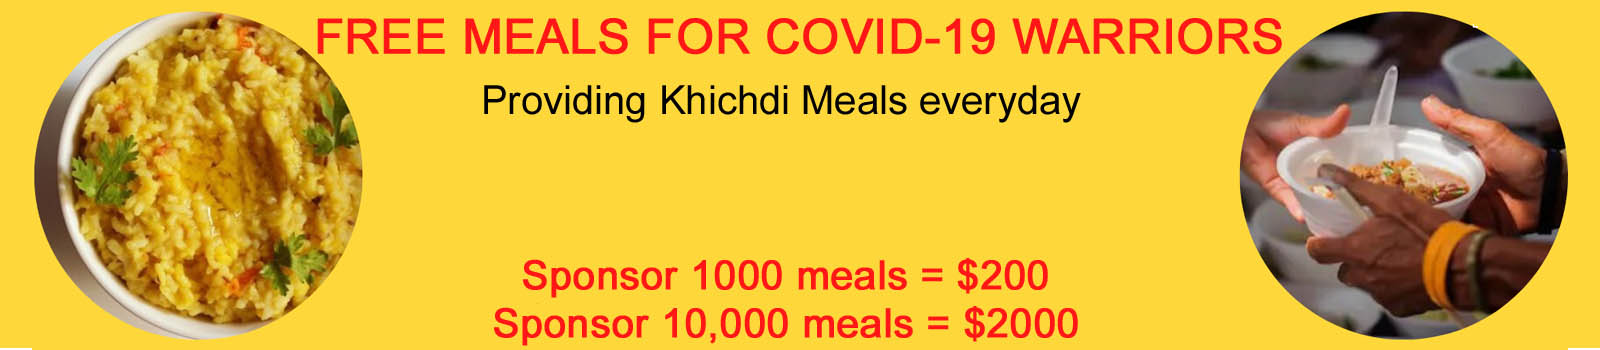 Join in the COVID-19 Support Drive